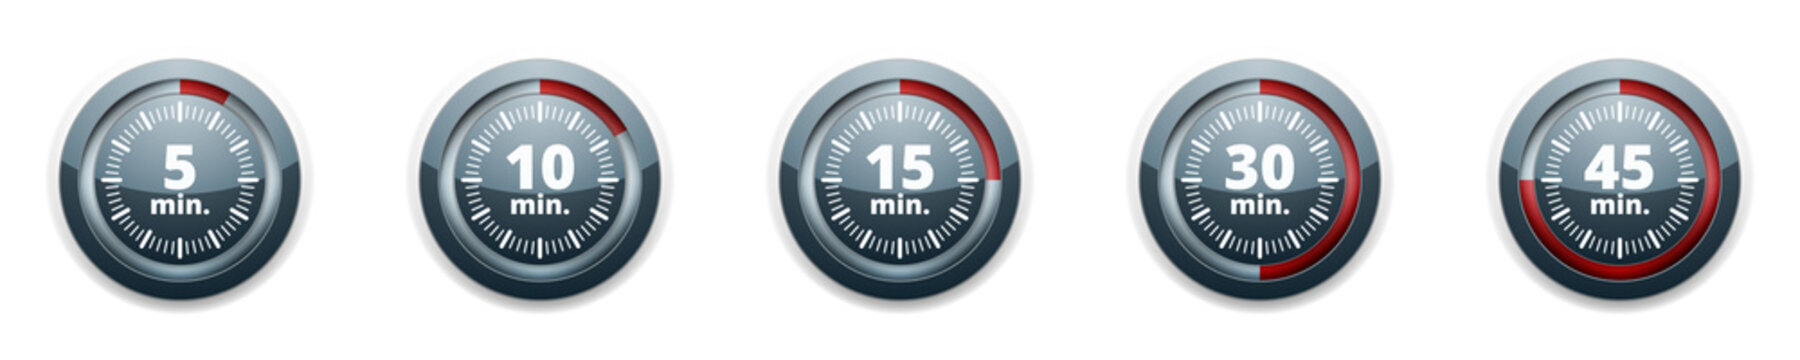 Minutes Time button illustration